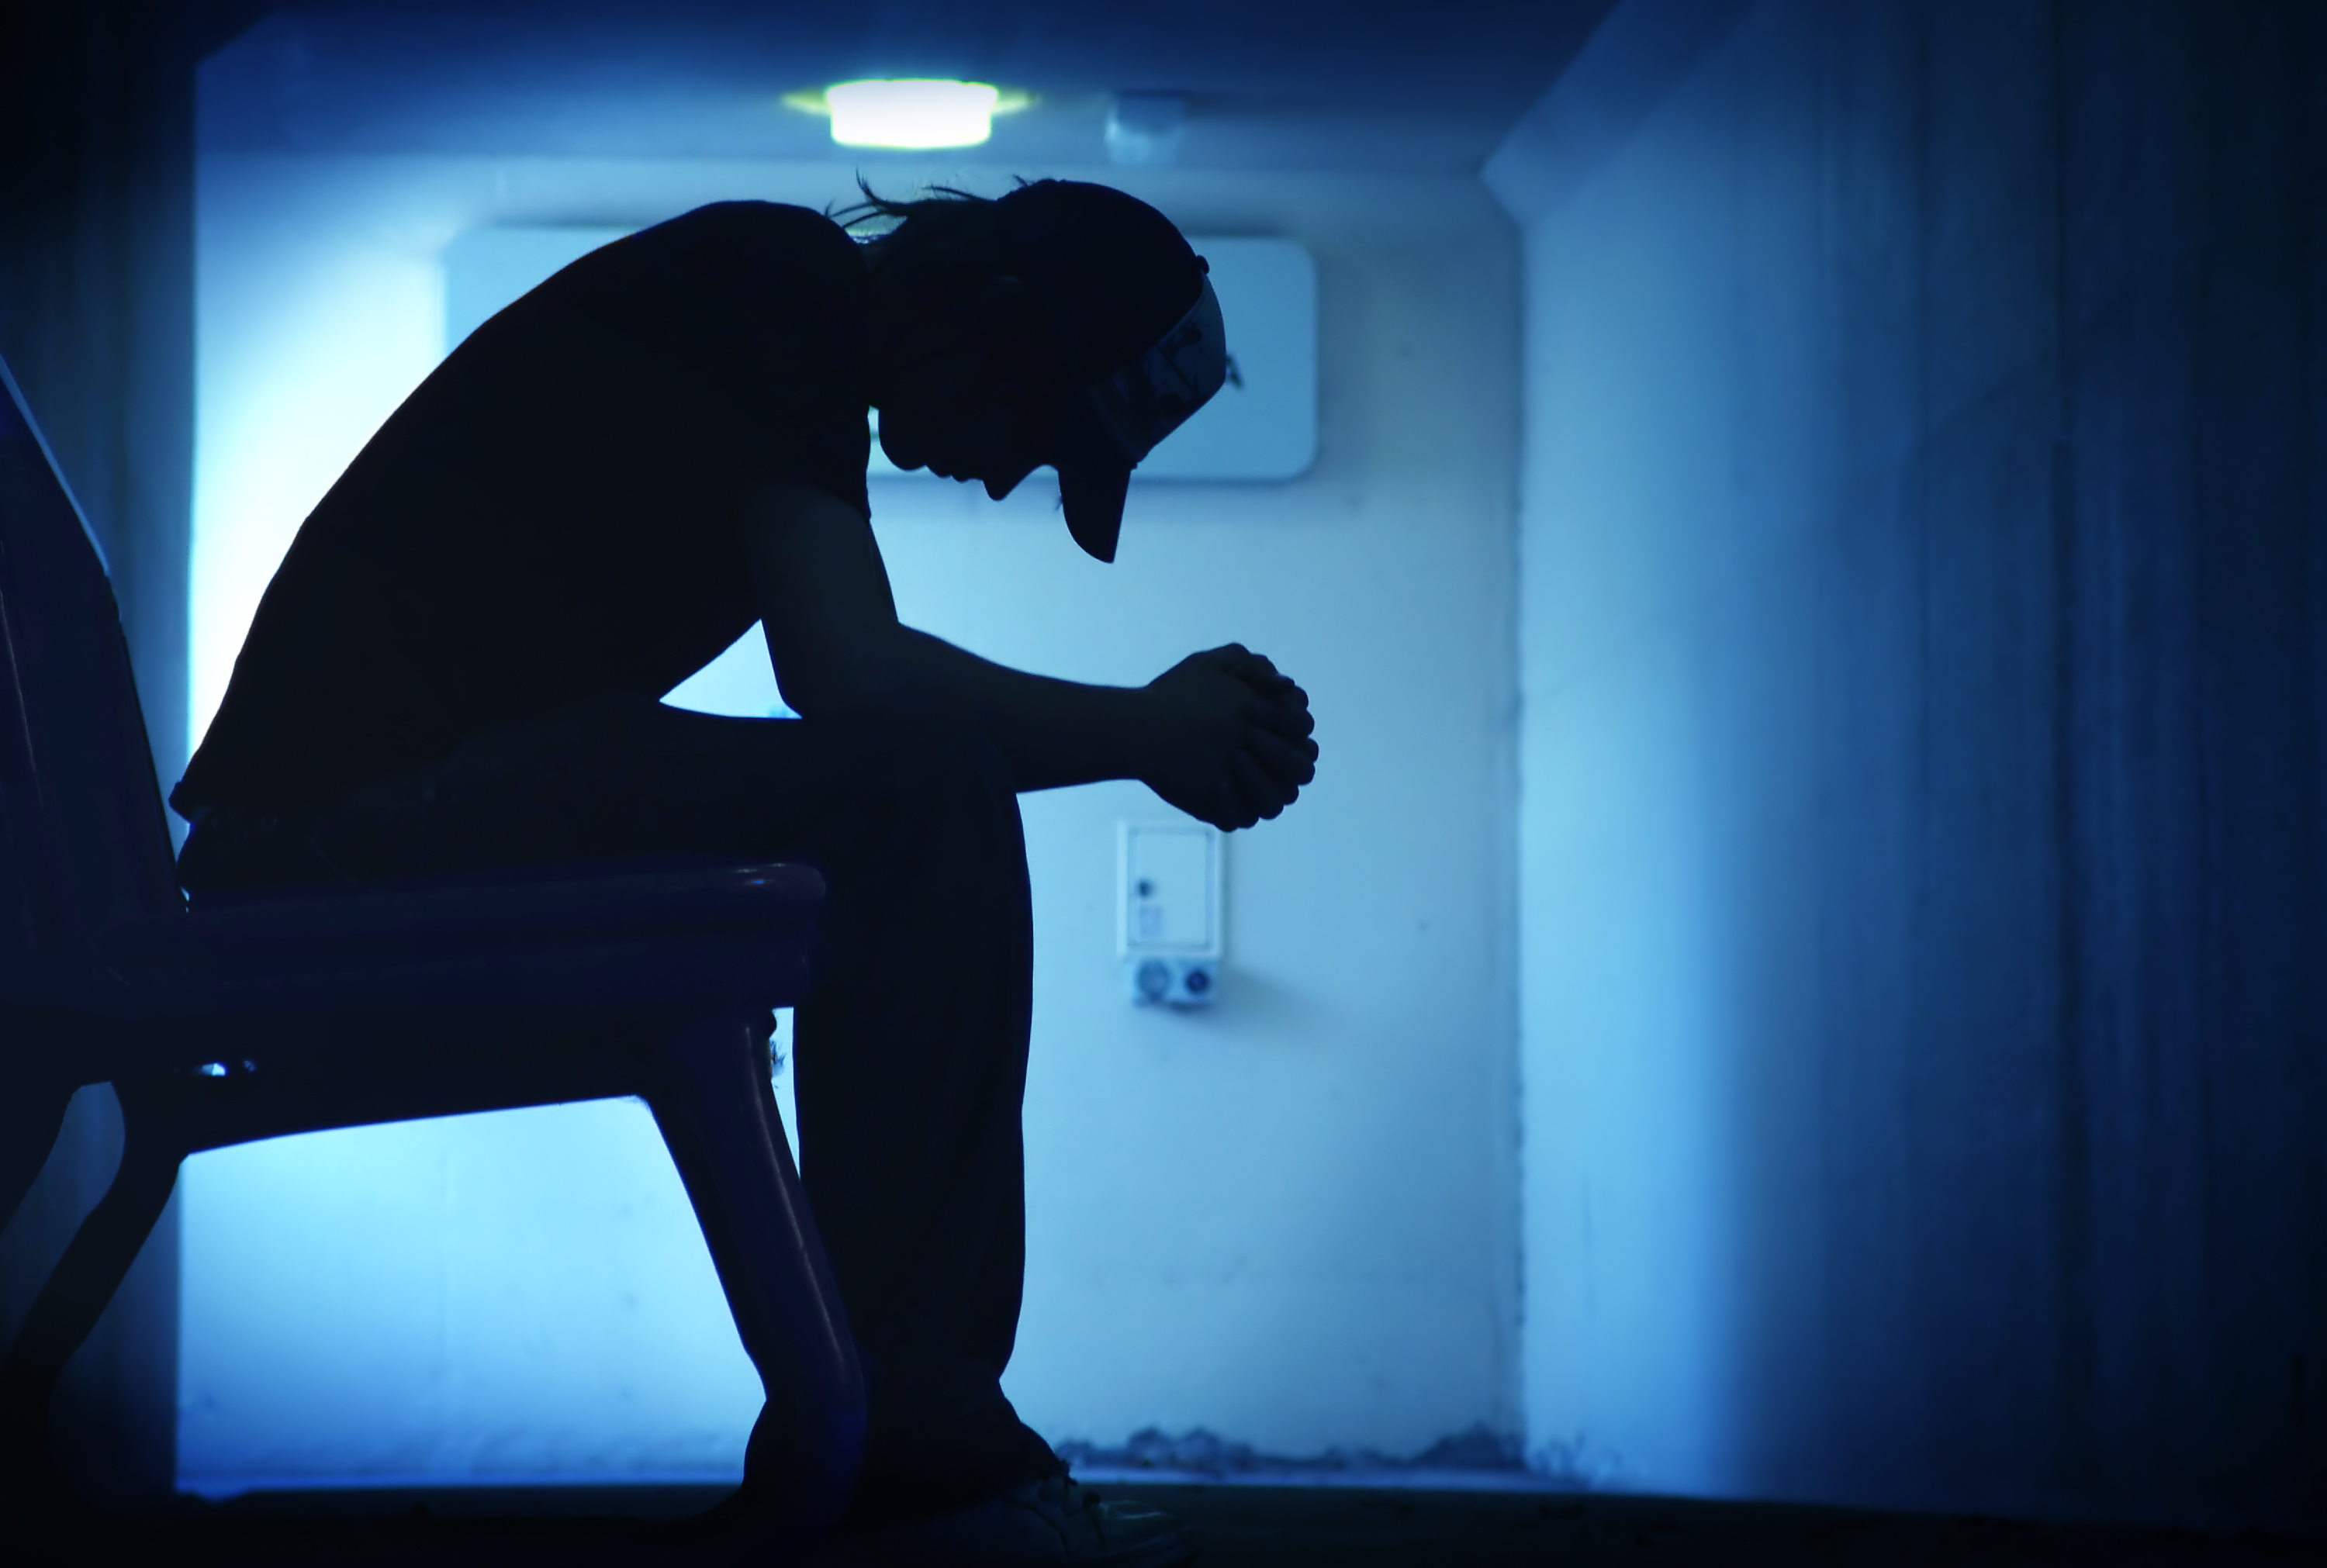 Many prisoners self-harm and some attempt suicide (iStock/PA)